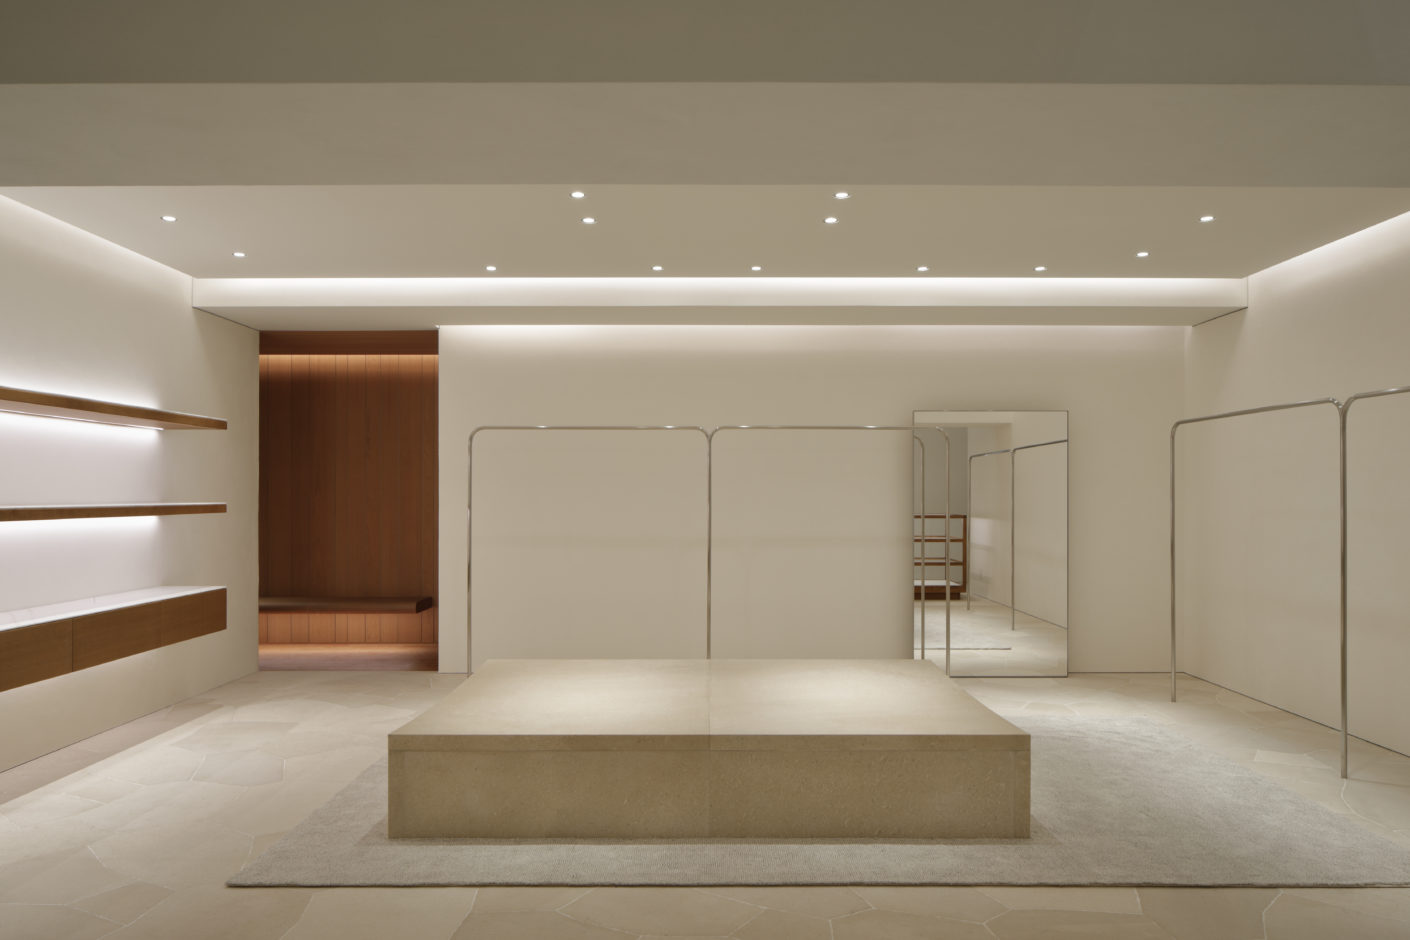 Jil Sander John Pawson Tokio Omotesando Lower Ground 1